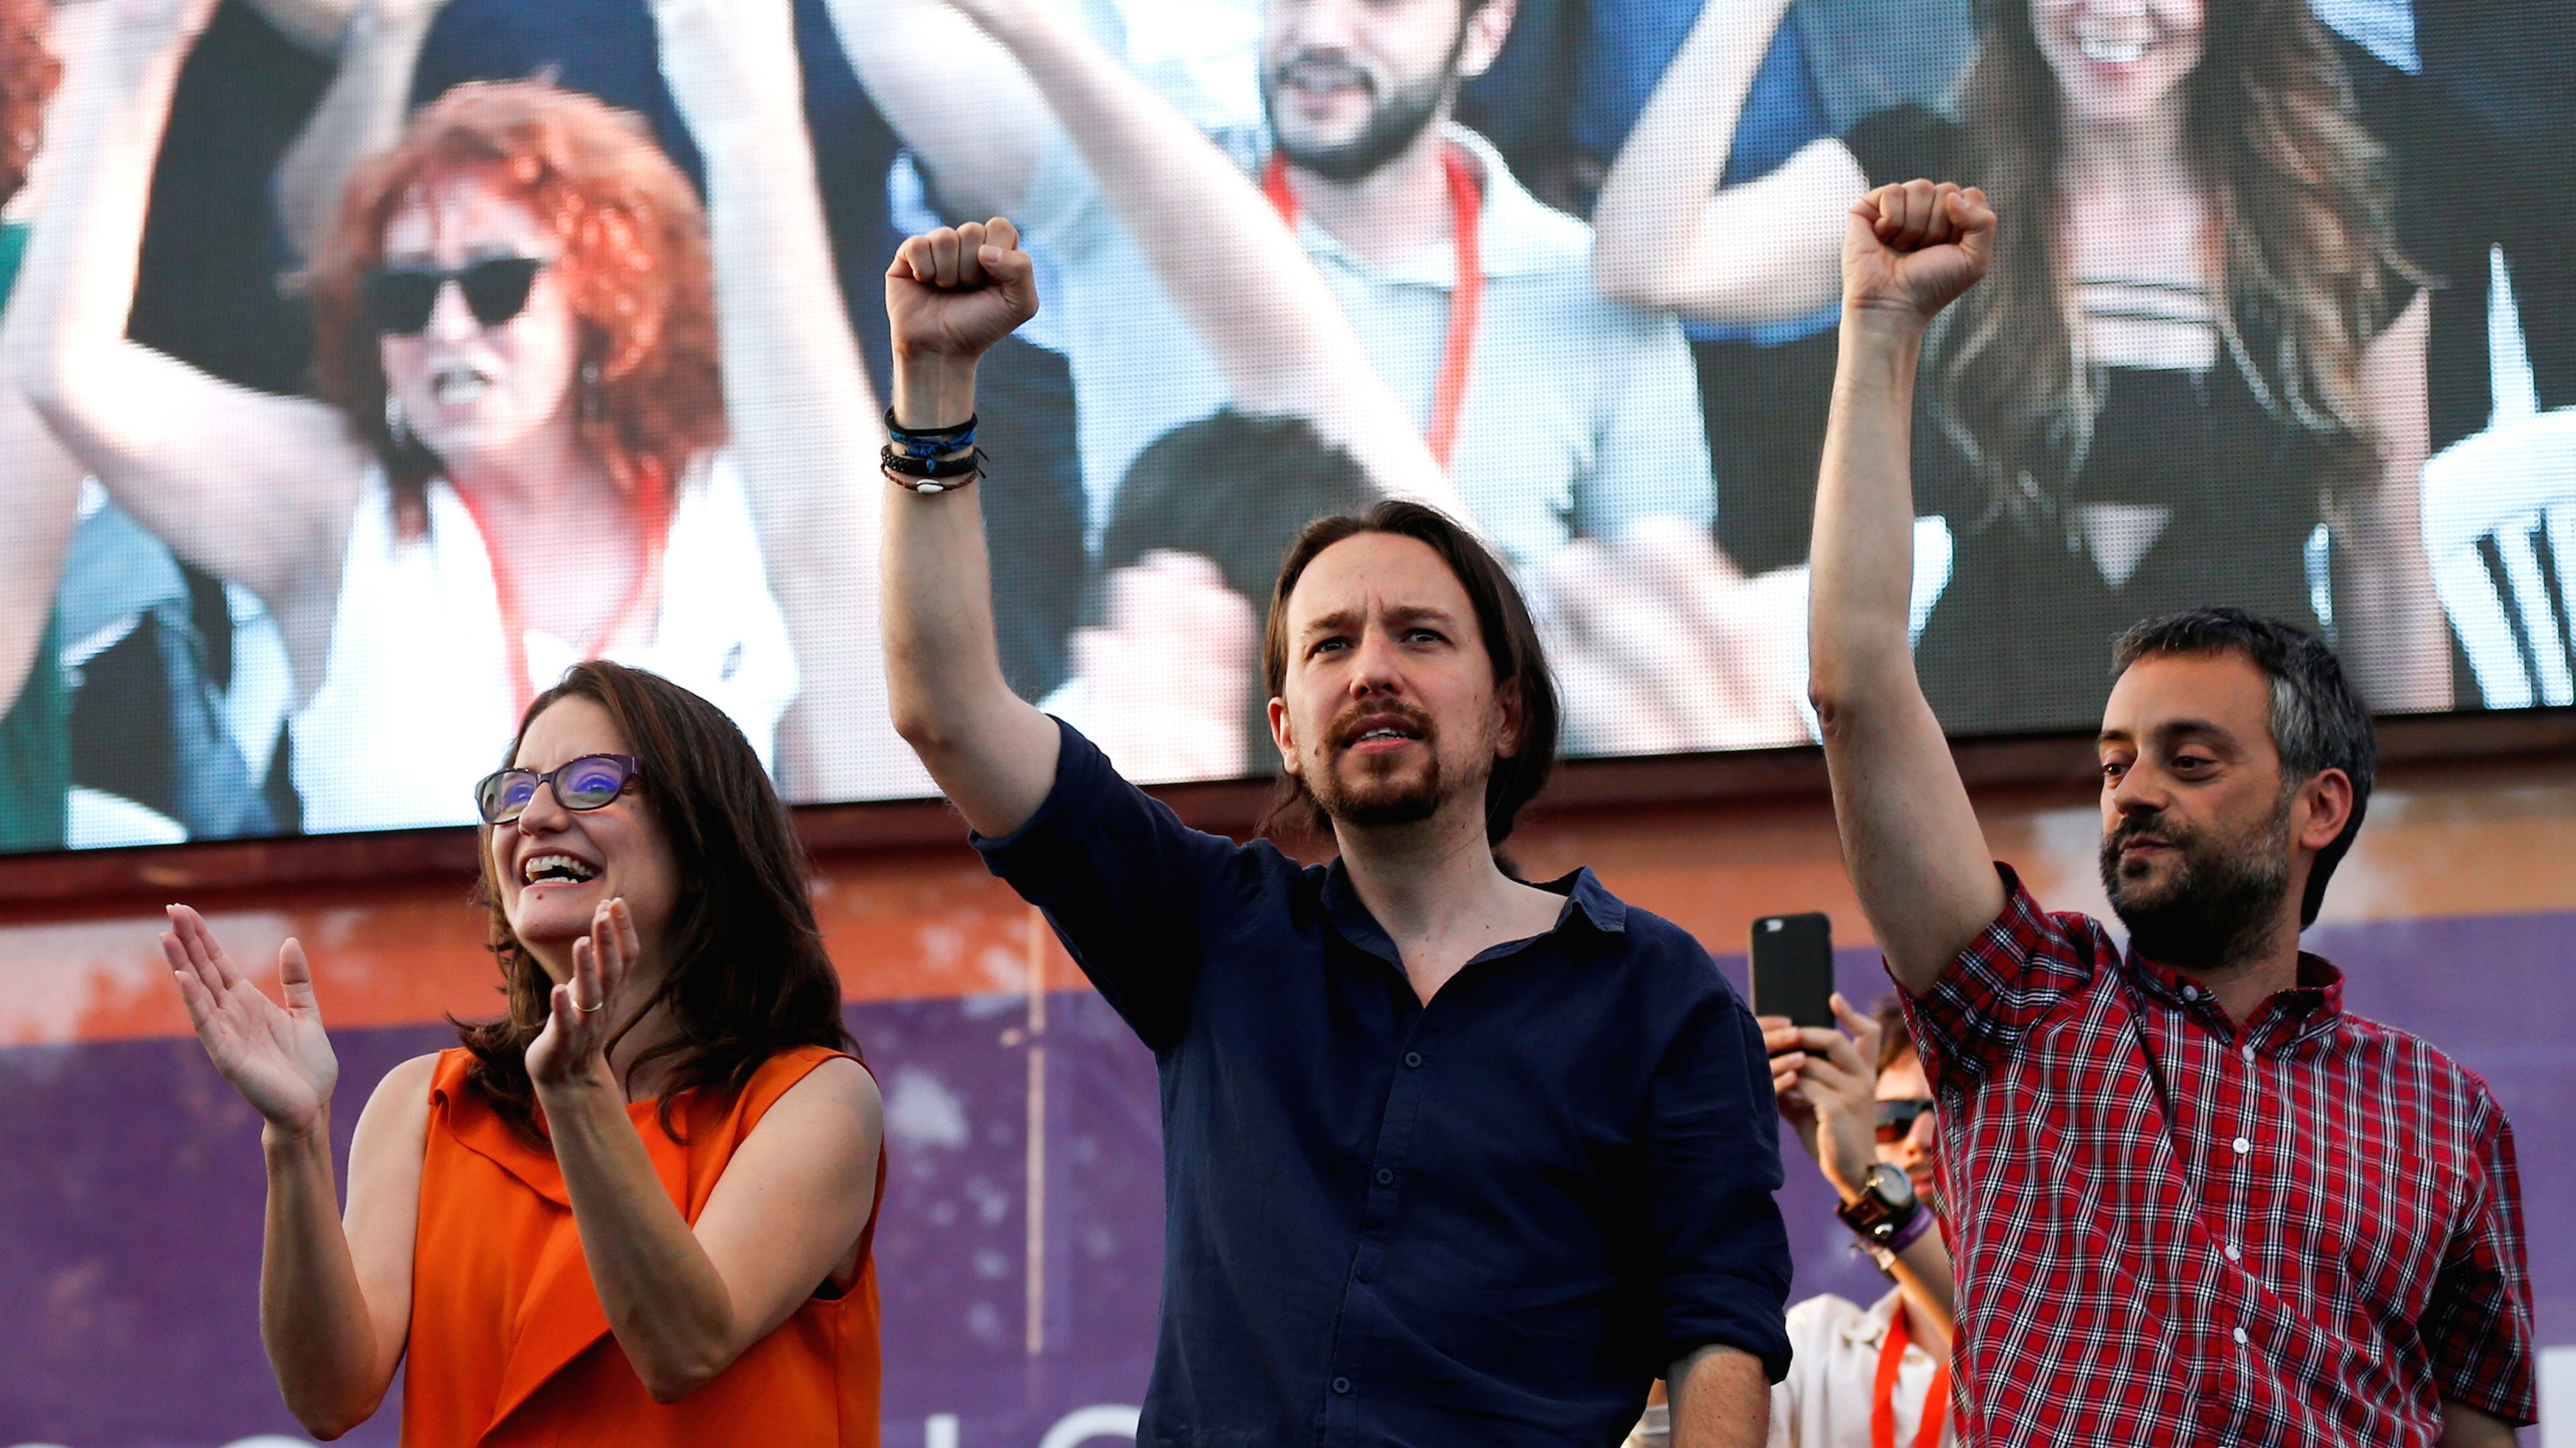 Pablo Iglesias (center) leads a coalition of far-left, anti-establishment political parties that just might clinch a majority in Spain's parliamentary elections on Sunday.